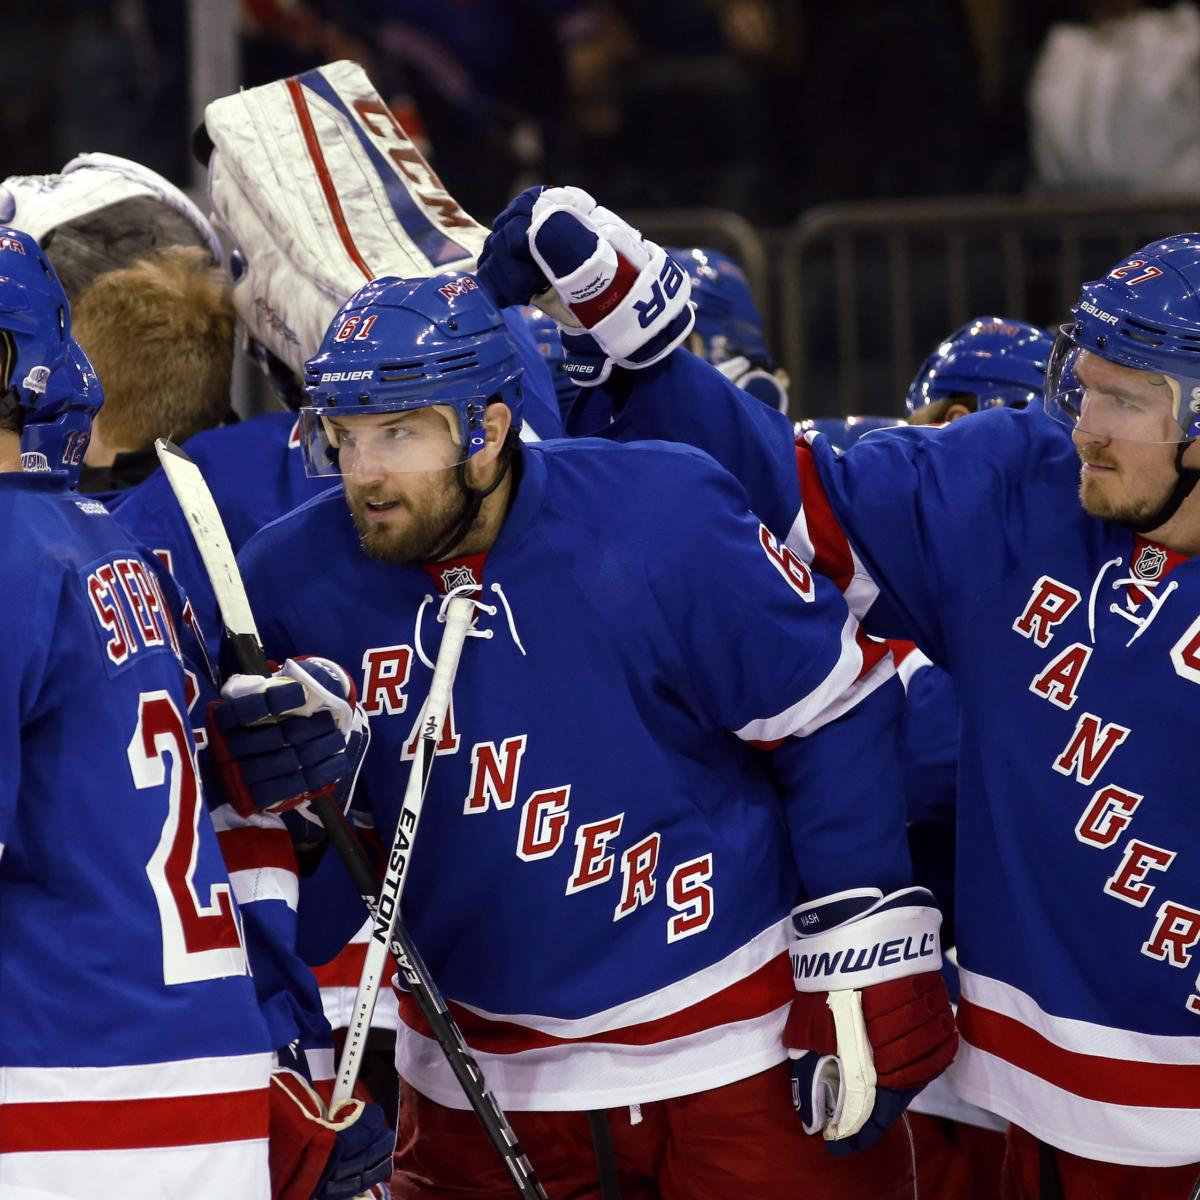 NHL Playoff Bracket 2015: Schedule, Format And Stanley Cup